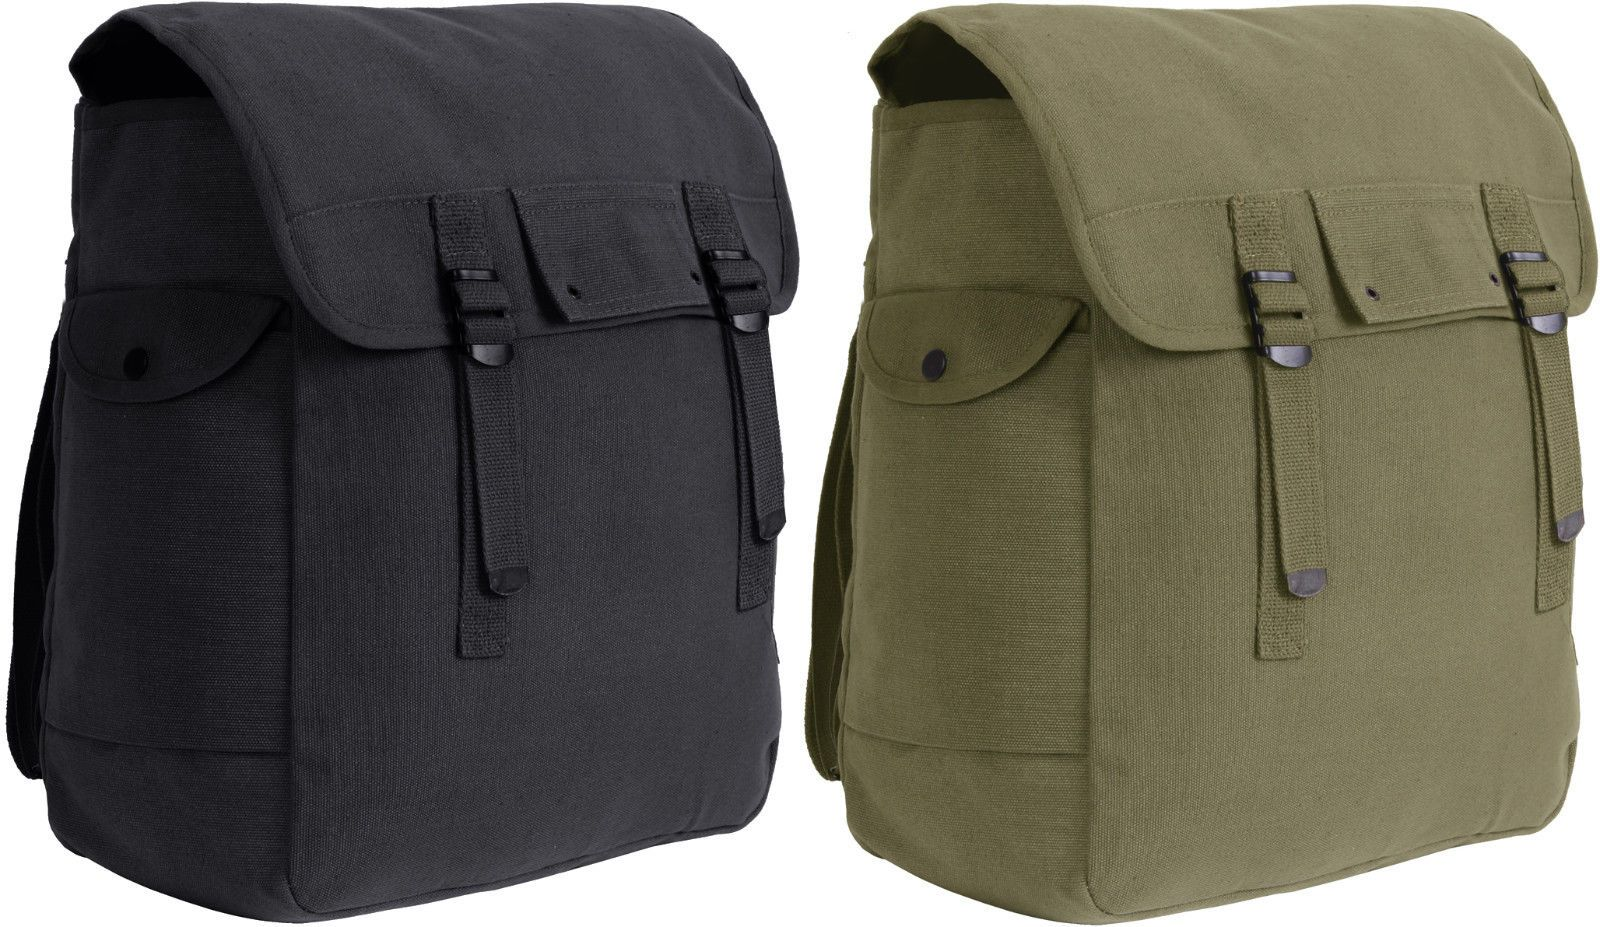 daff1fe90c5 Details about Jumbo Heavyweight Canvas Military Musette Bag 15